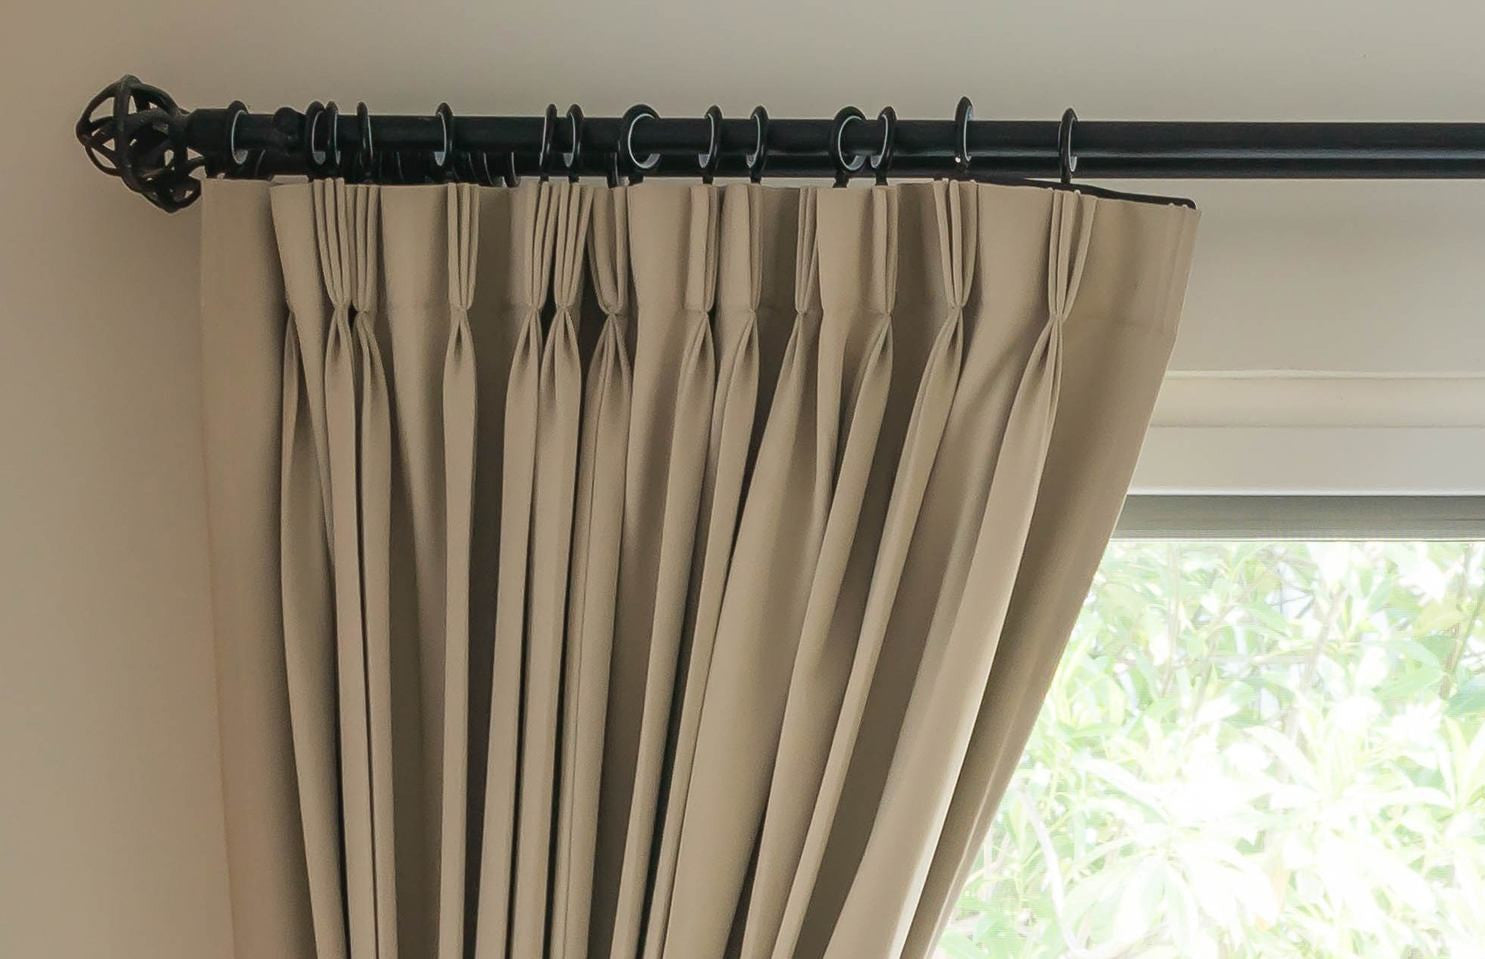 Here at terrys fabrics we have over 40 years experience in fabrics curtains tracks poles blinds and installation we pride ourselves on our knowledge